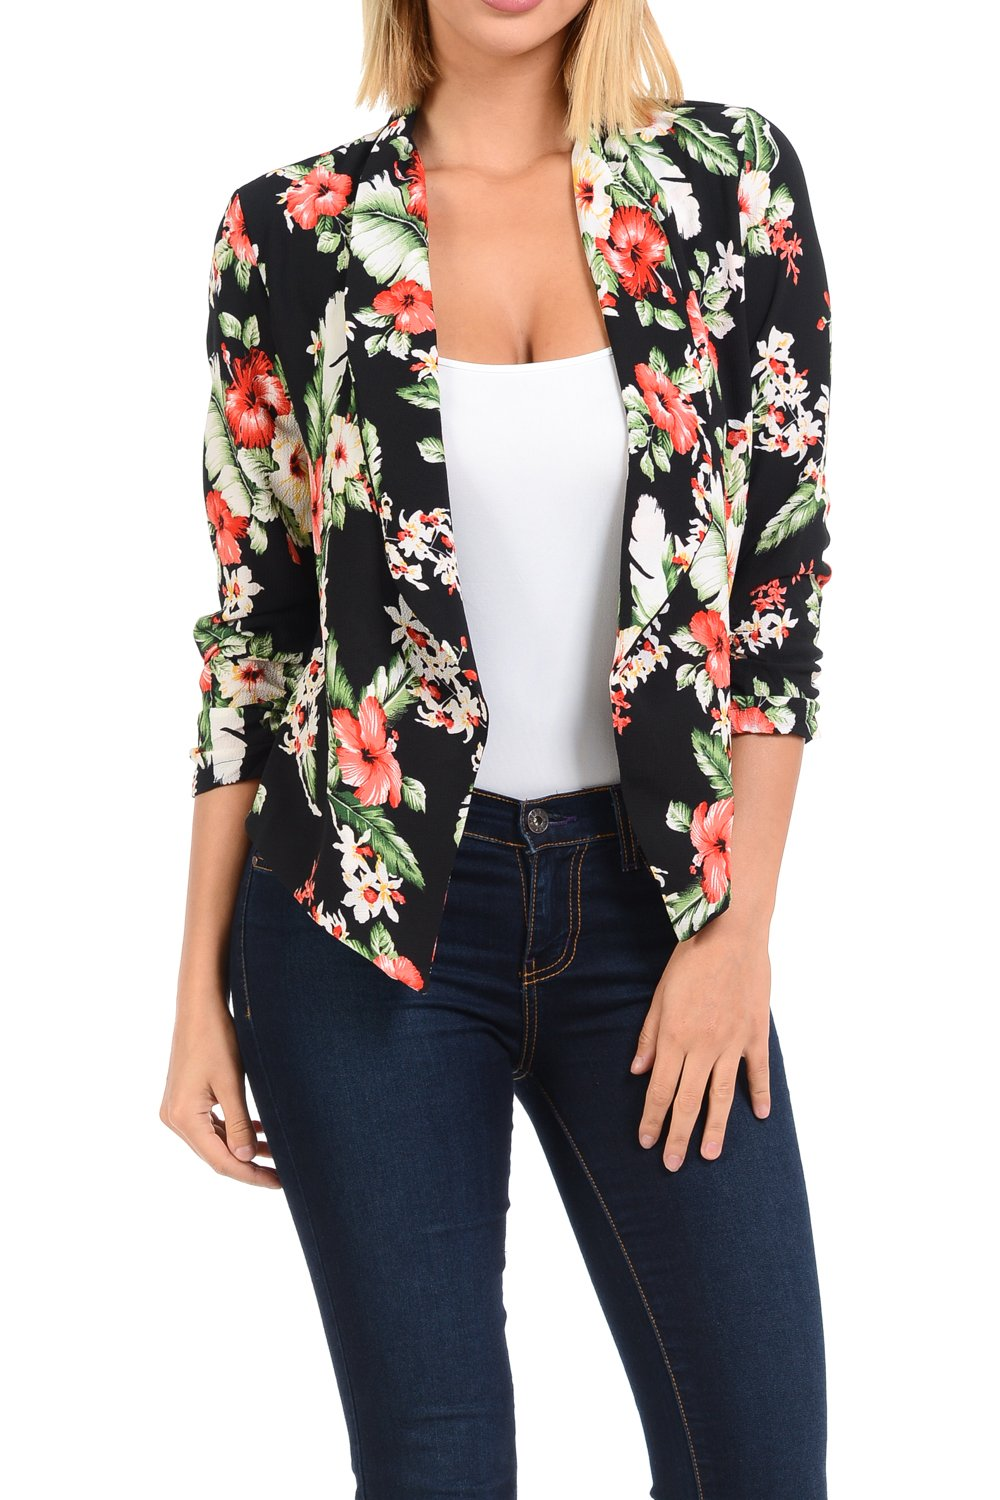 Auliné Collection Womens Casual Lightweight 3/4 Sleeve Fitted Open Blazer Floral Print 4 Medium